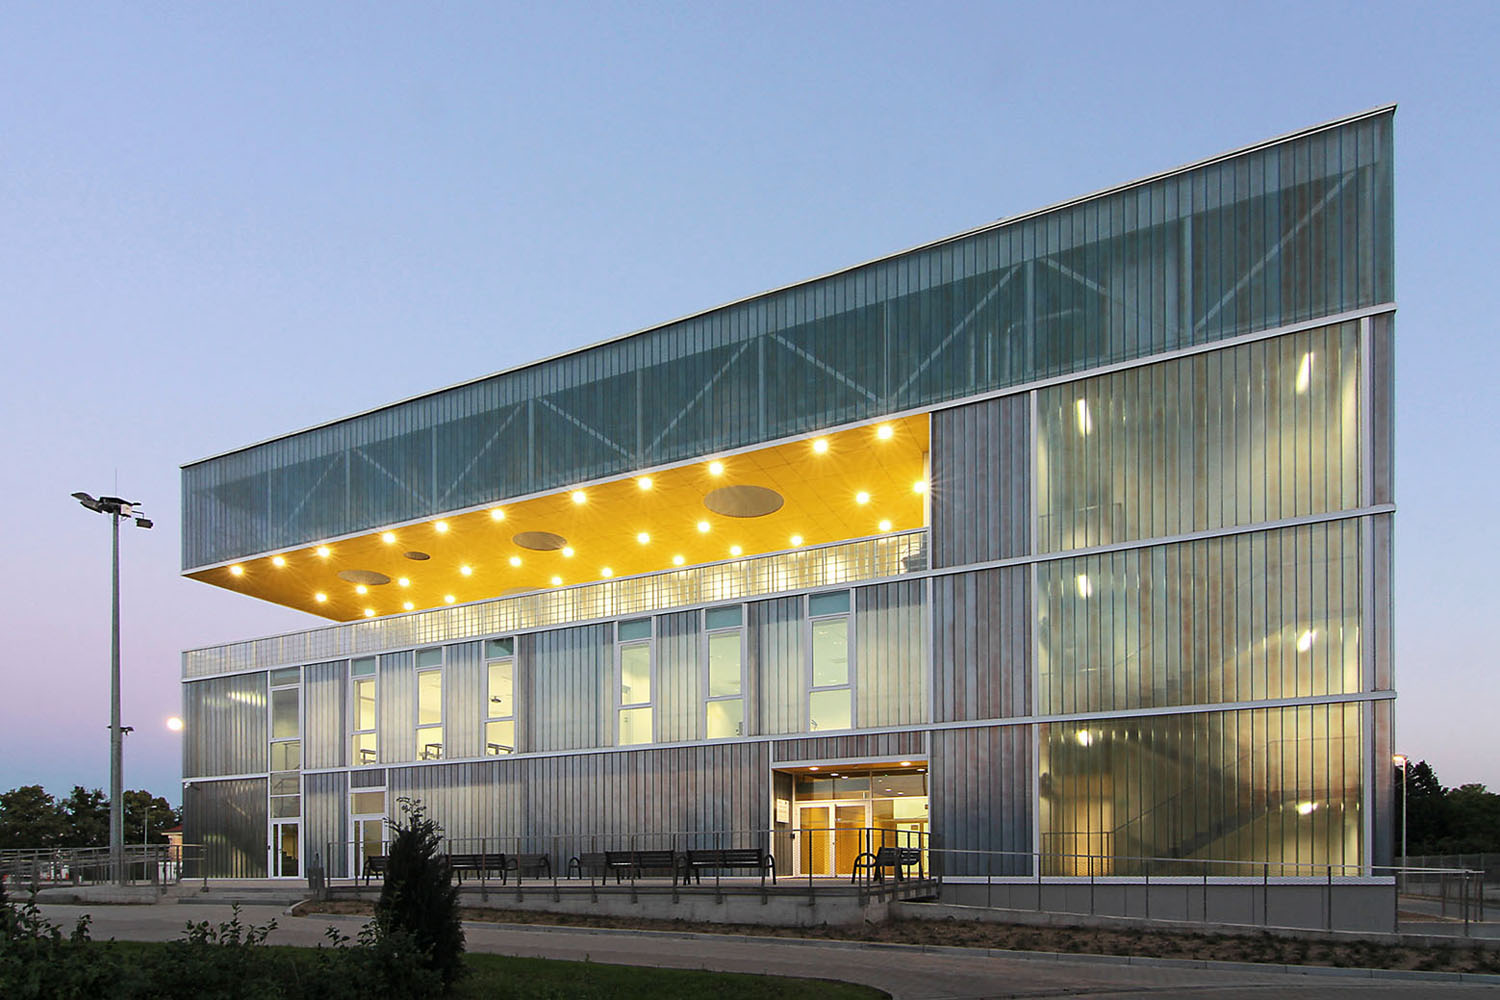 Sports Hall in Poznan design by Neostudio Architekci